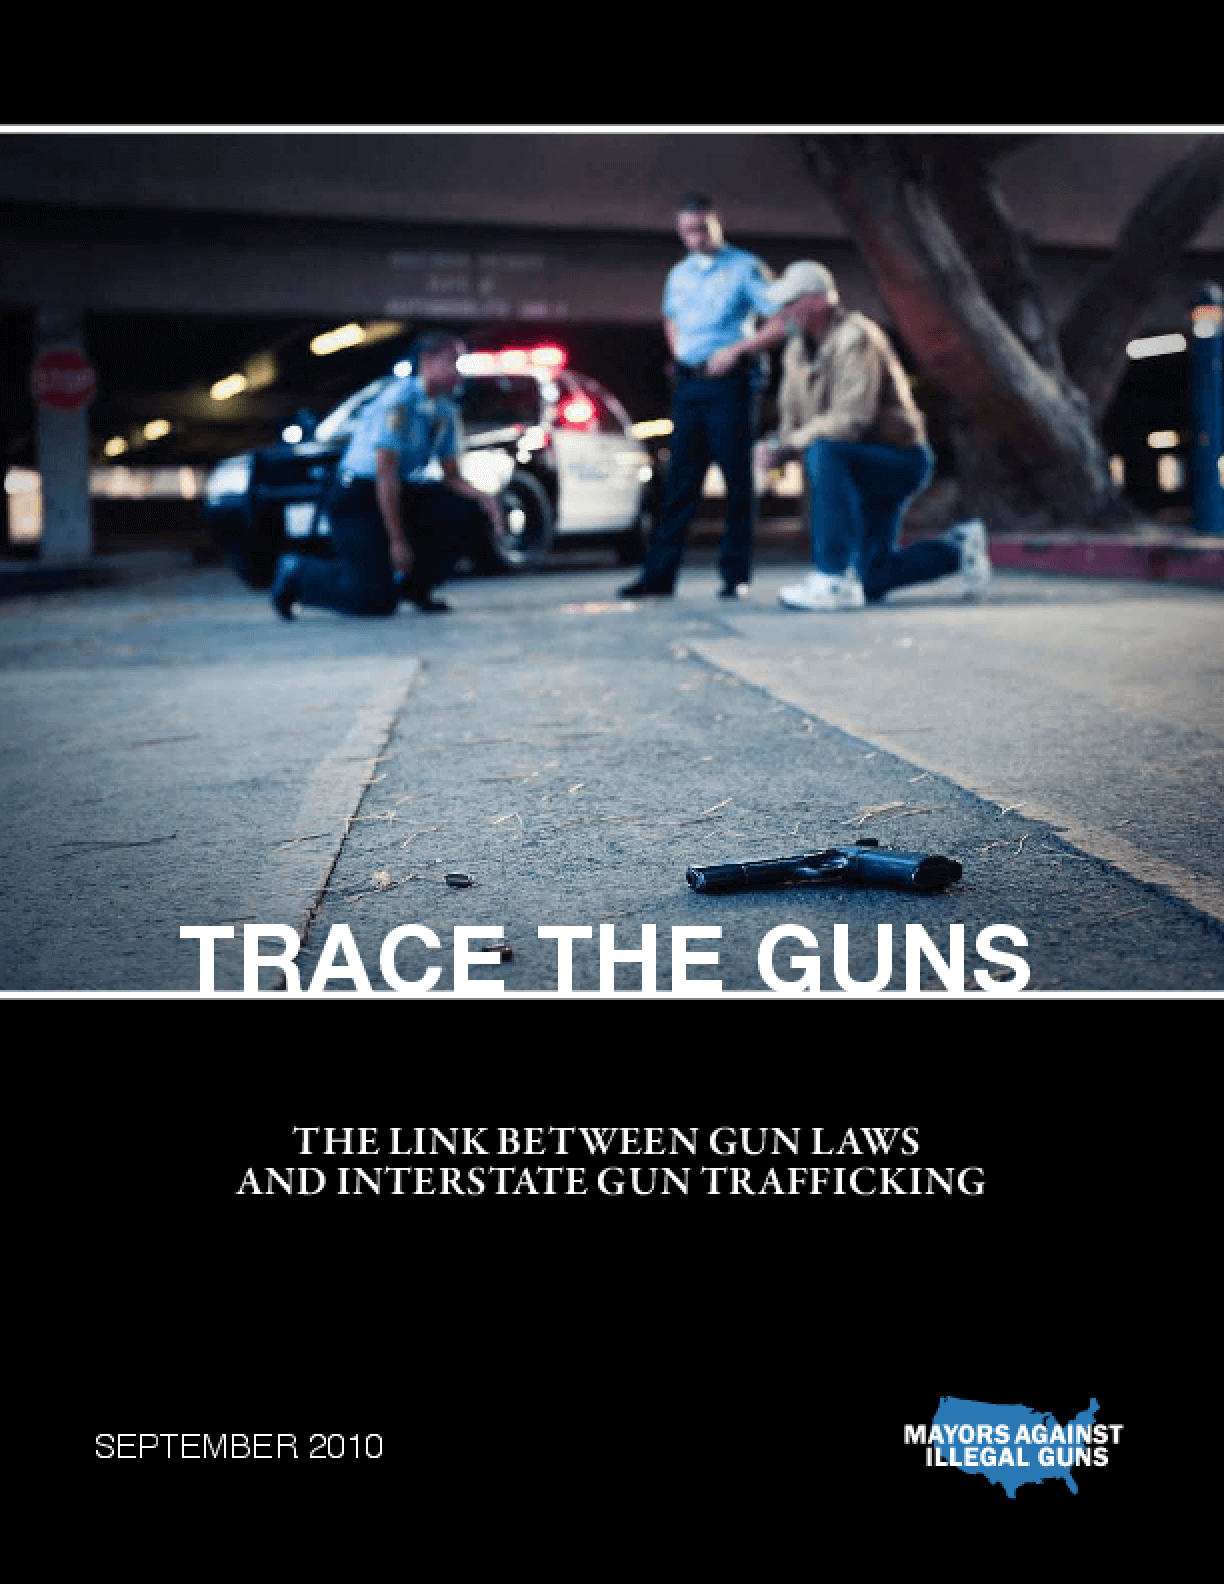 Trace the Guns: The Link Between Gun Laws and Interstate Gun Trafficking